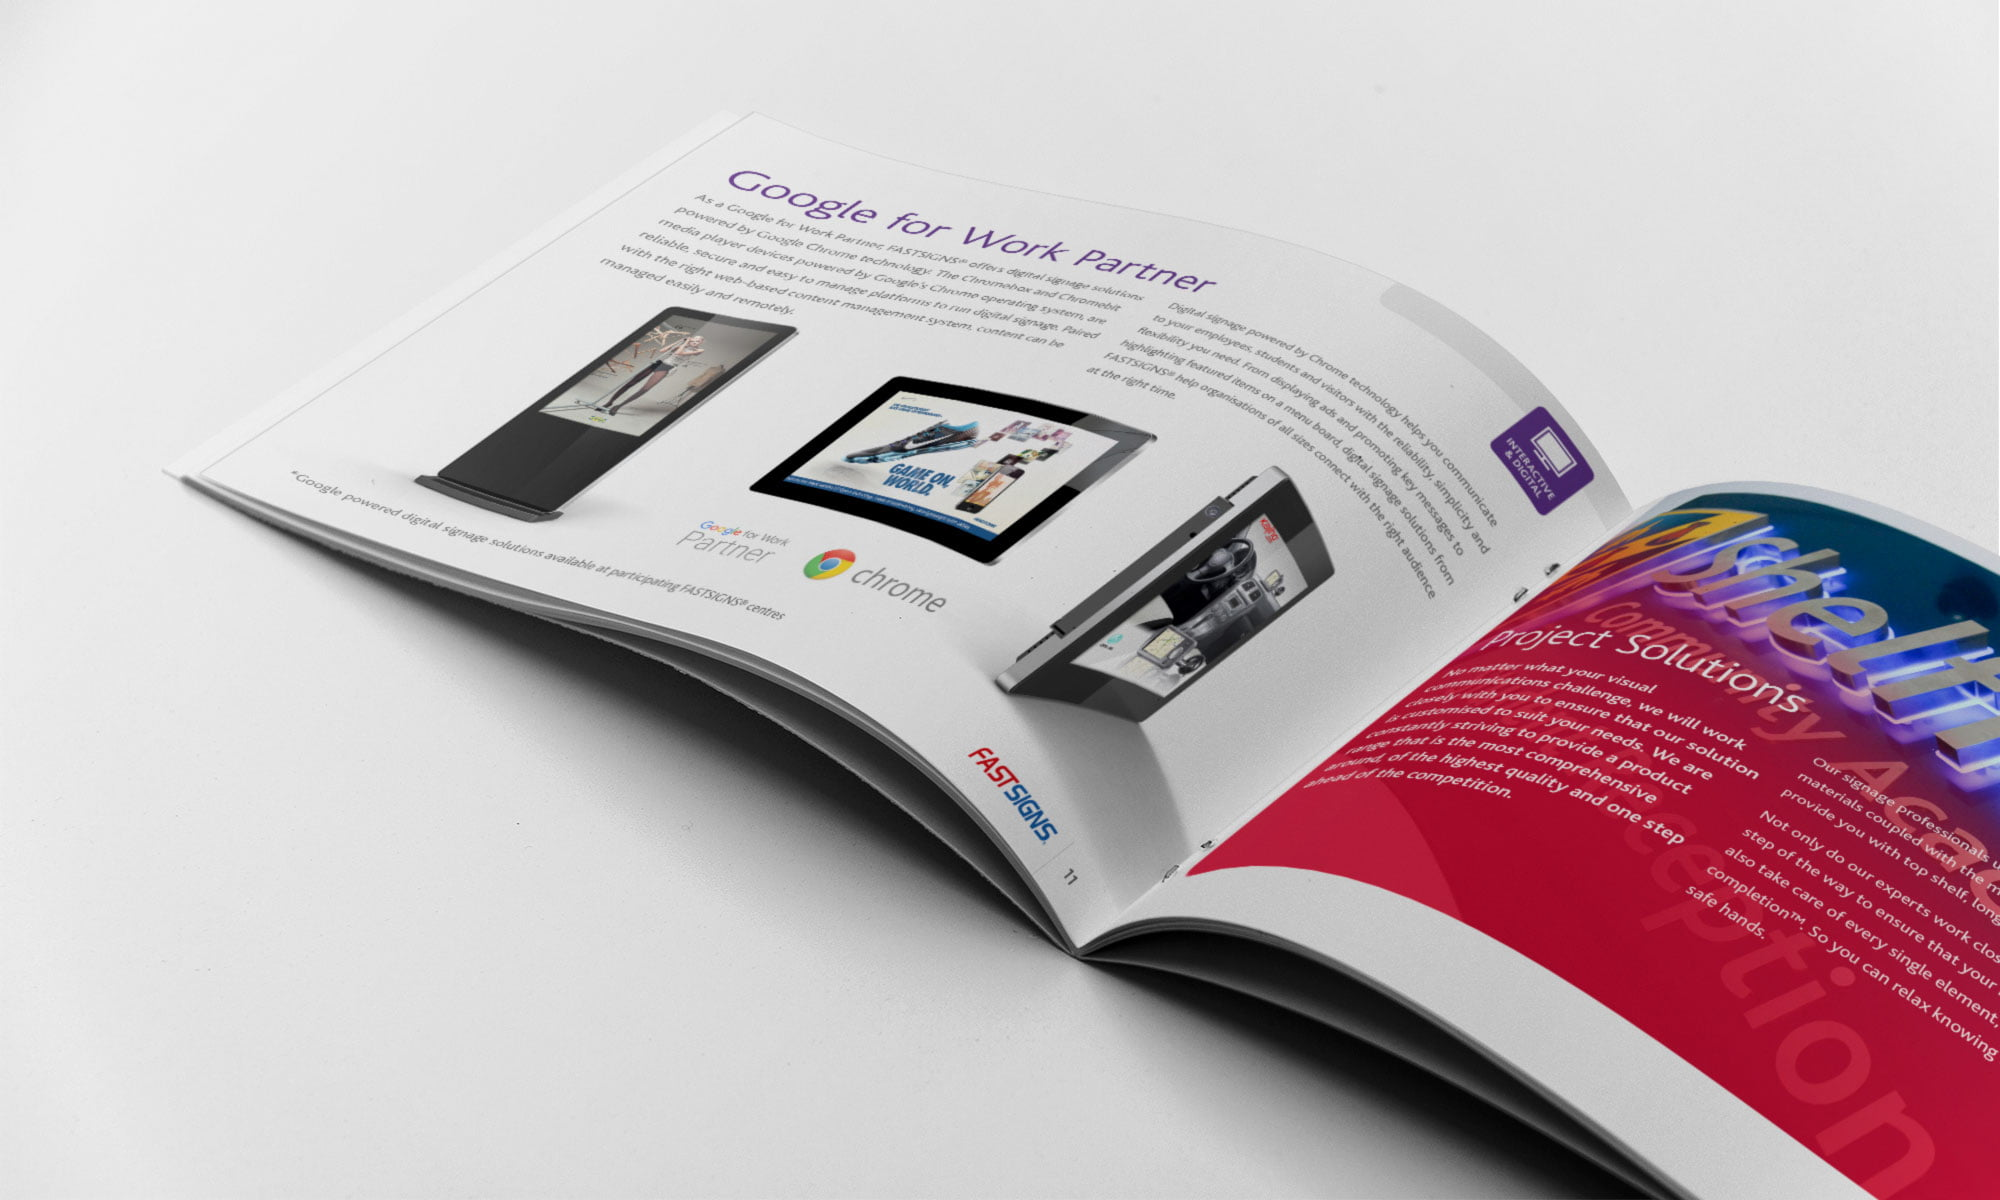 FastSigns brochure spread